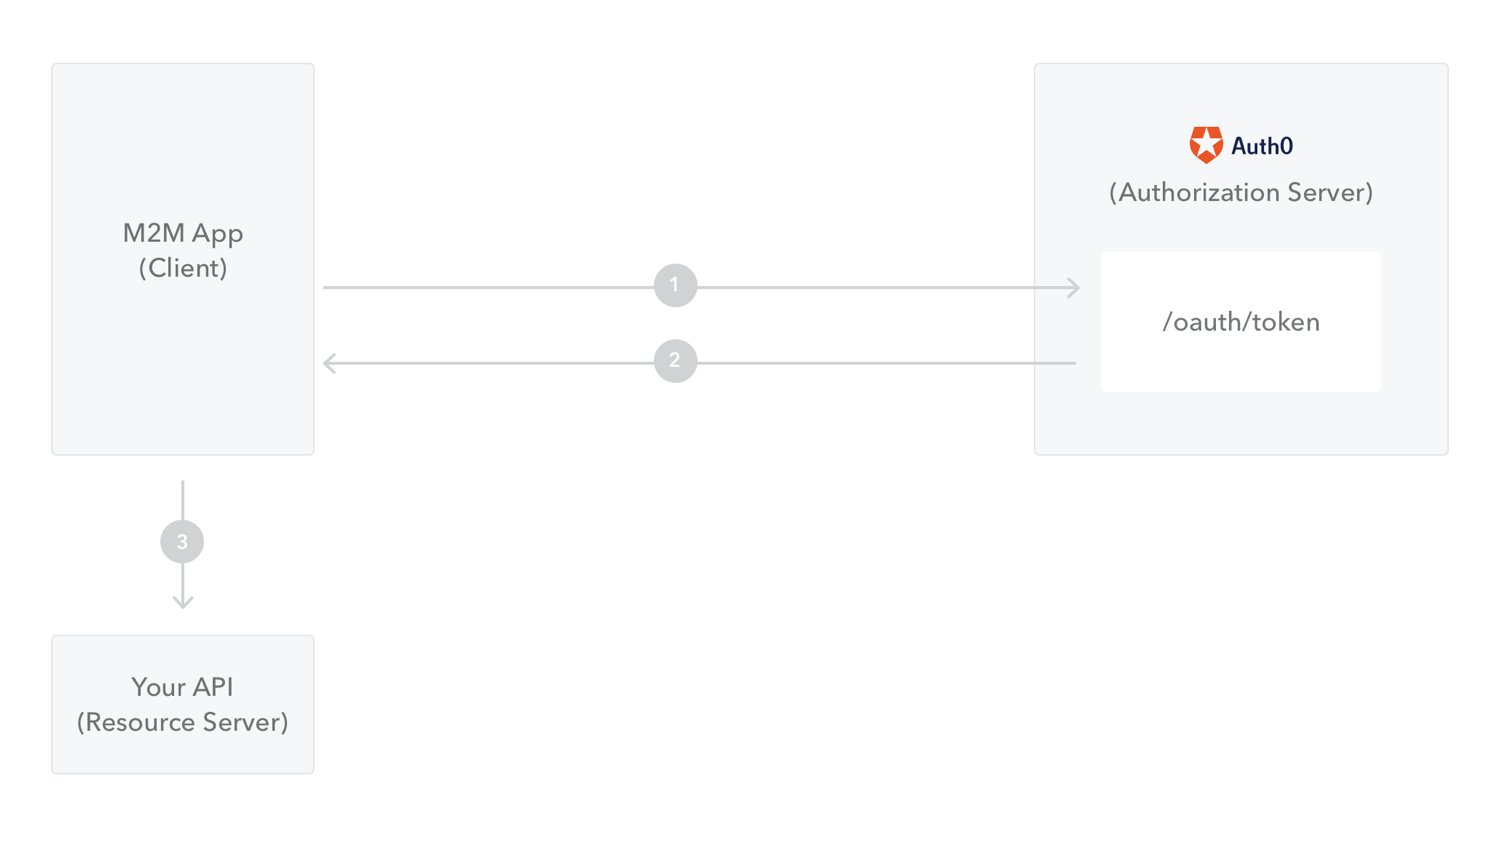 Flow Overview for Machine-to-Machine Apps